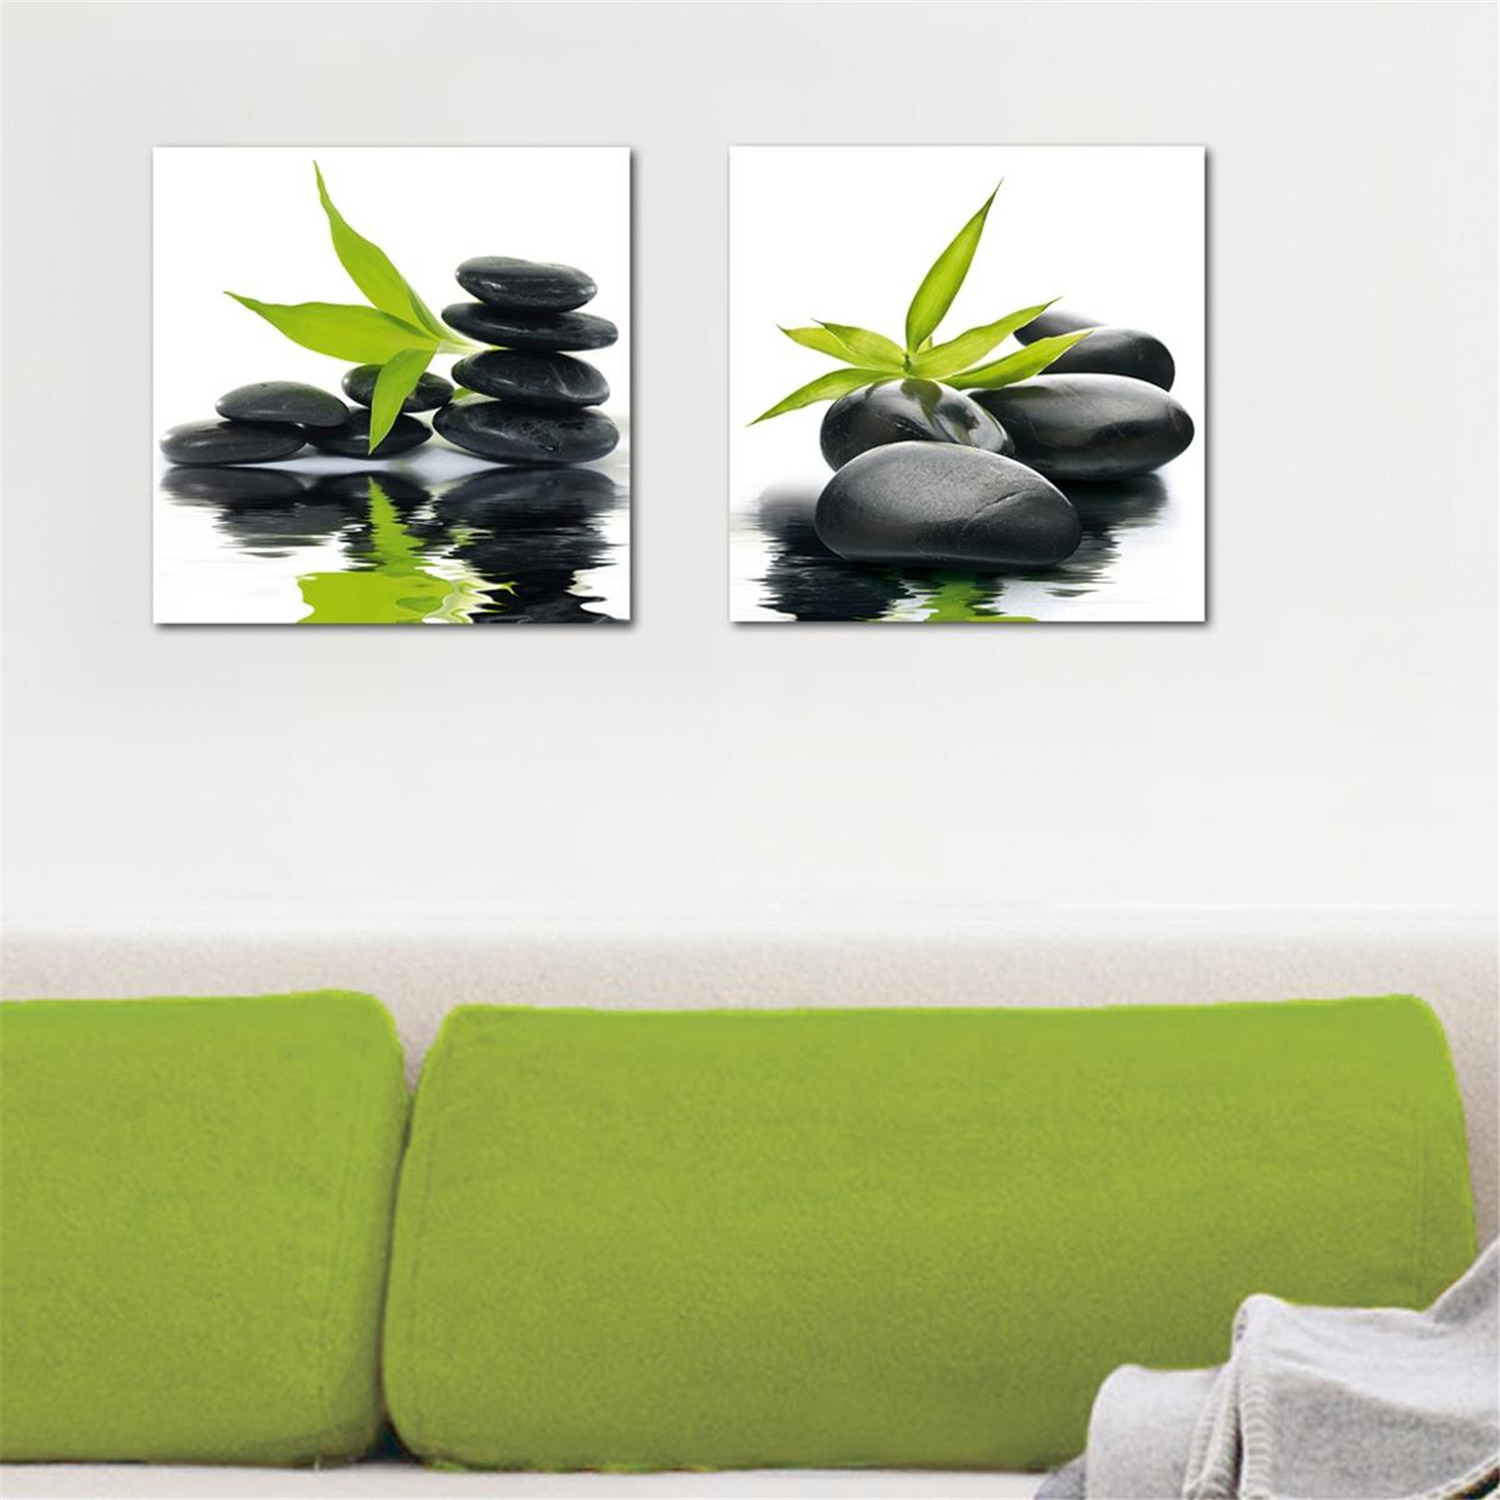 deco glass wall decor art on glass zen impression ojcommerce. Black Bedroom Furniture Sets. Home Design Ideas